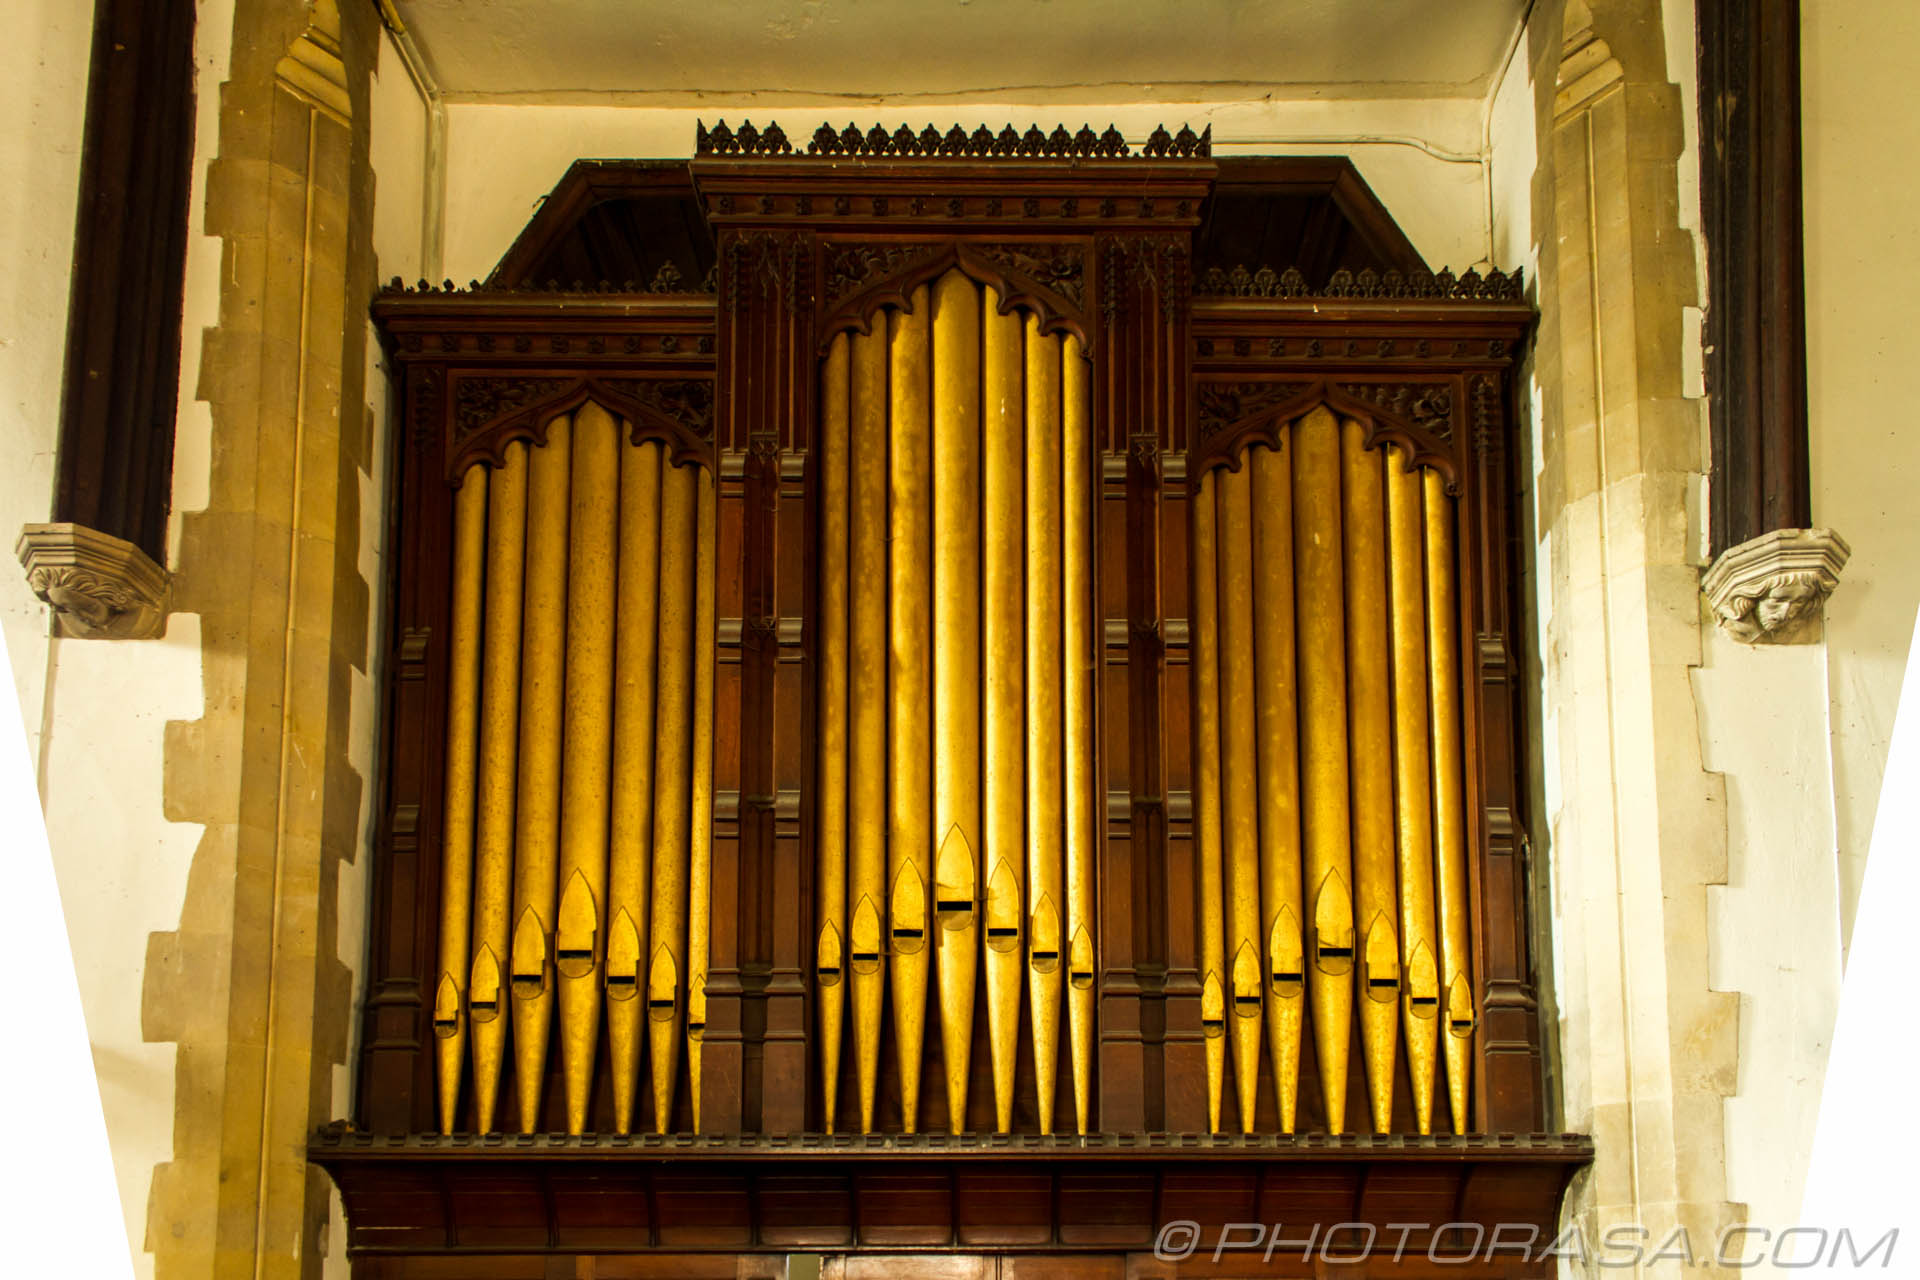 http://photorasa.com/saints-church-staplehurst-kent/brass-organ-pipes/